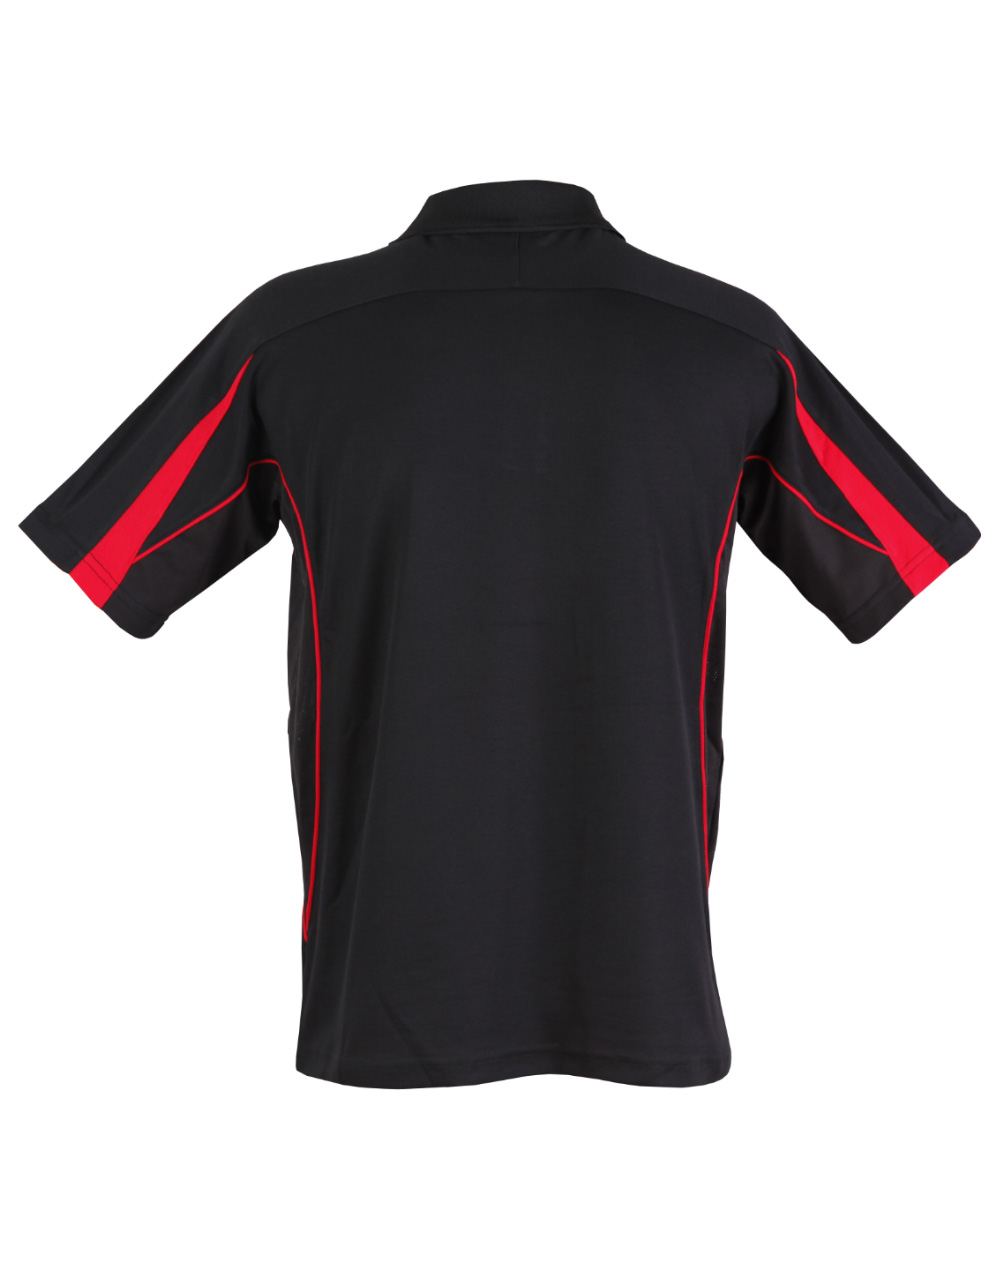 https://s3-ap-southeast-1.amazonaws.com/ws-imgs/POLOSHIRTS/PS53_BlackRed_BACK_l.jpg